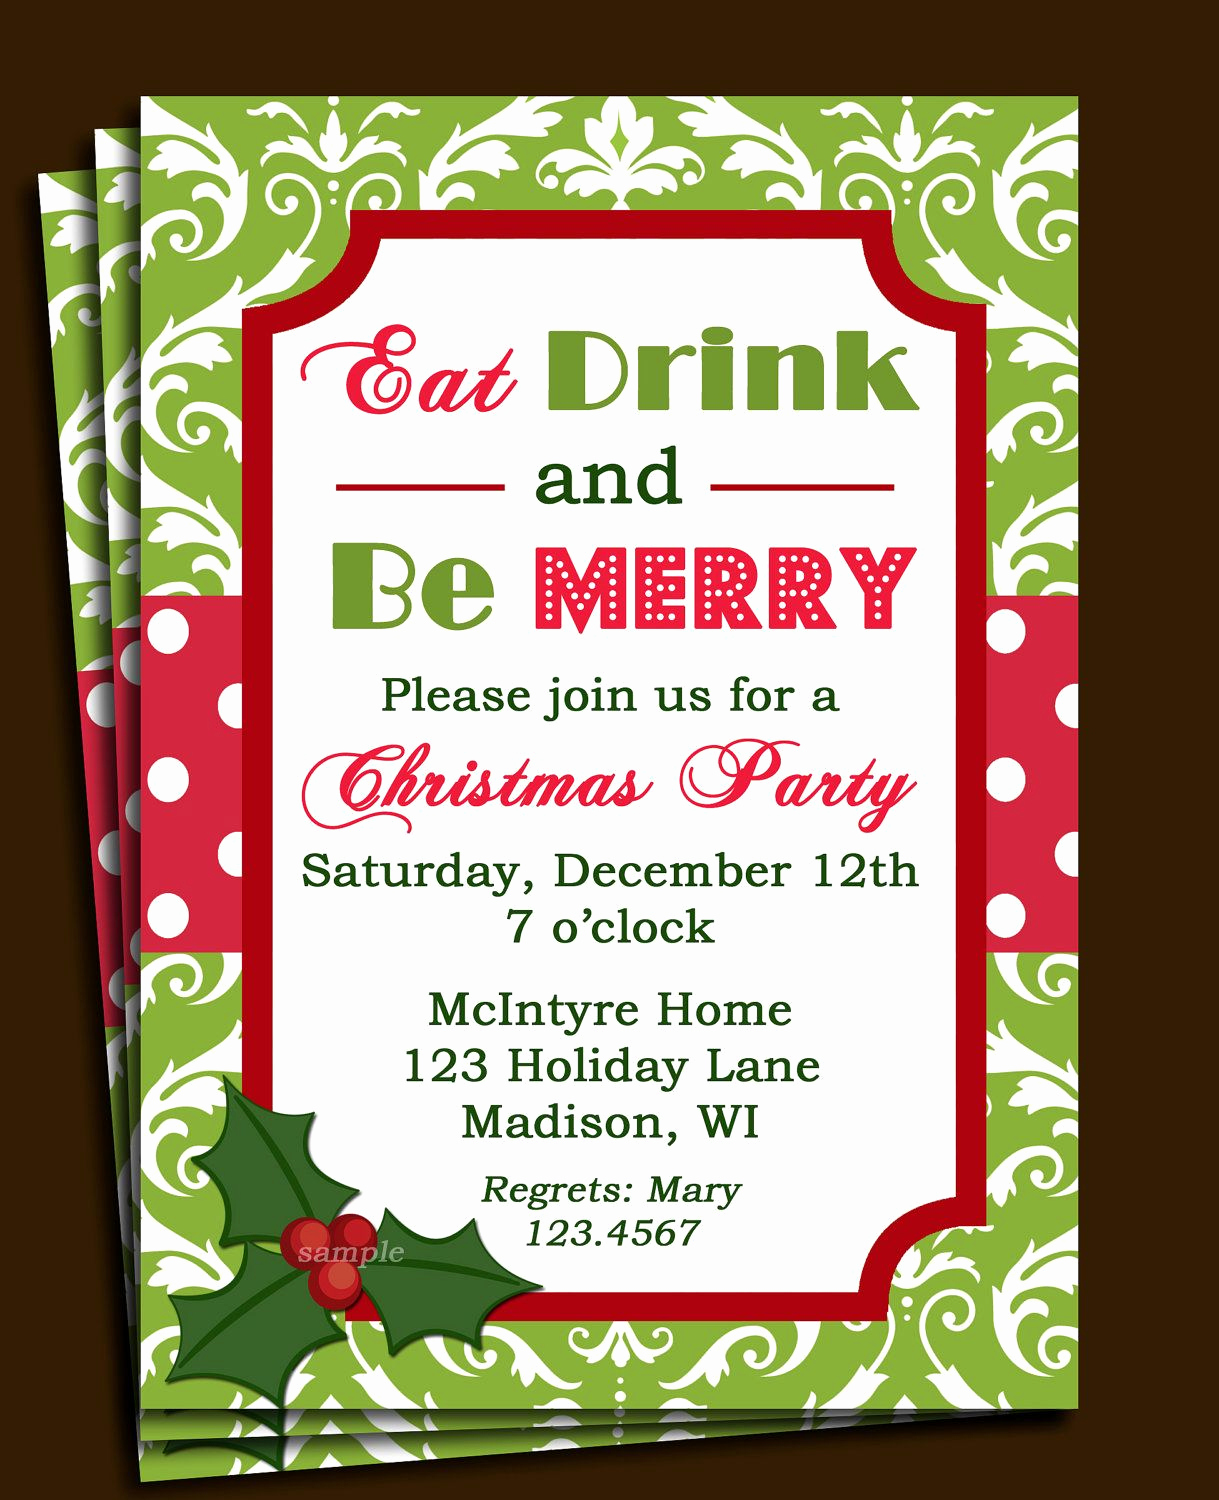 Christmas Party Invitation Idea Inspirational Free Printable Fice Christmas Party Invitations